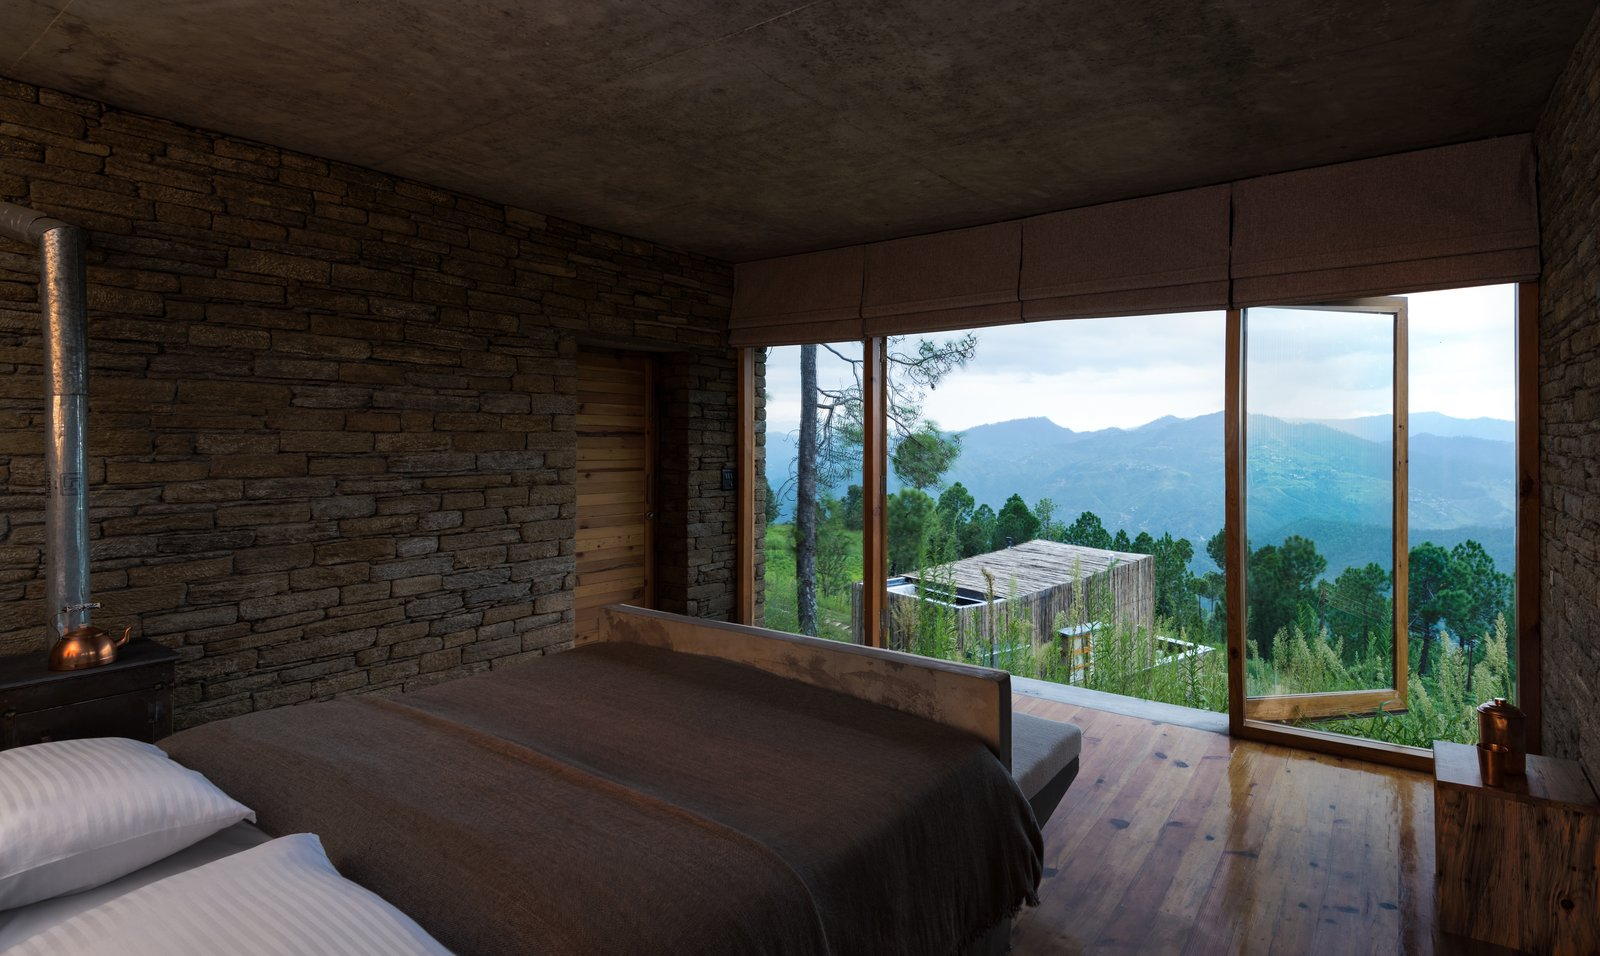 Bedroom, Bed, Medium Hardwood Floor, and Bench The guest rooms are located within chalet buildings that are scattered across the two-acre site, with each chalet split into two levels with one room on each.  Photo 9 of 15 in A New Retreat in the Indian Himalayas Captures Epic Views